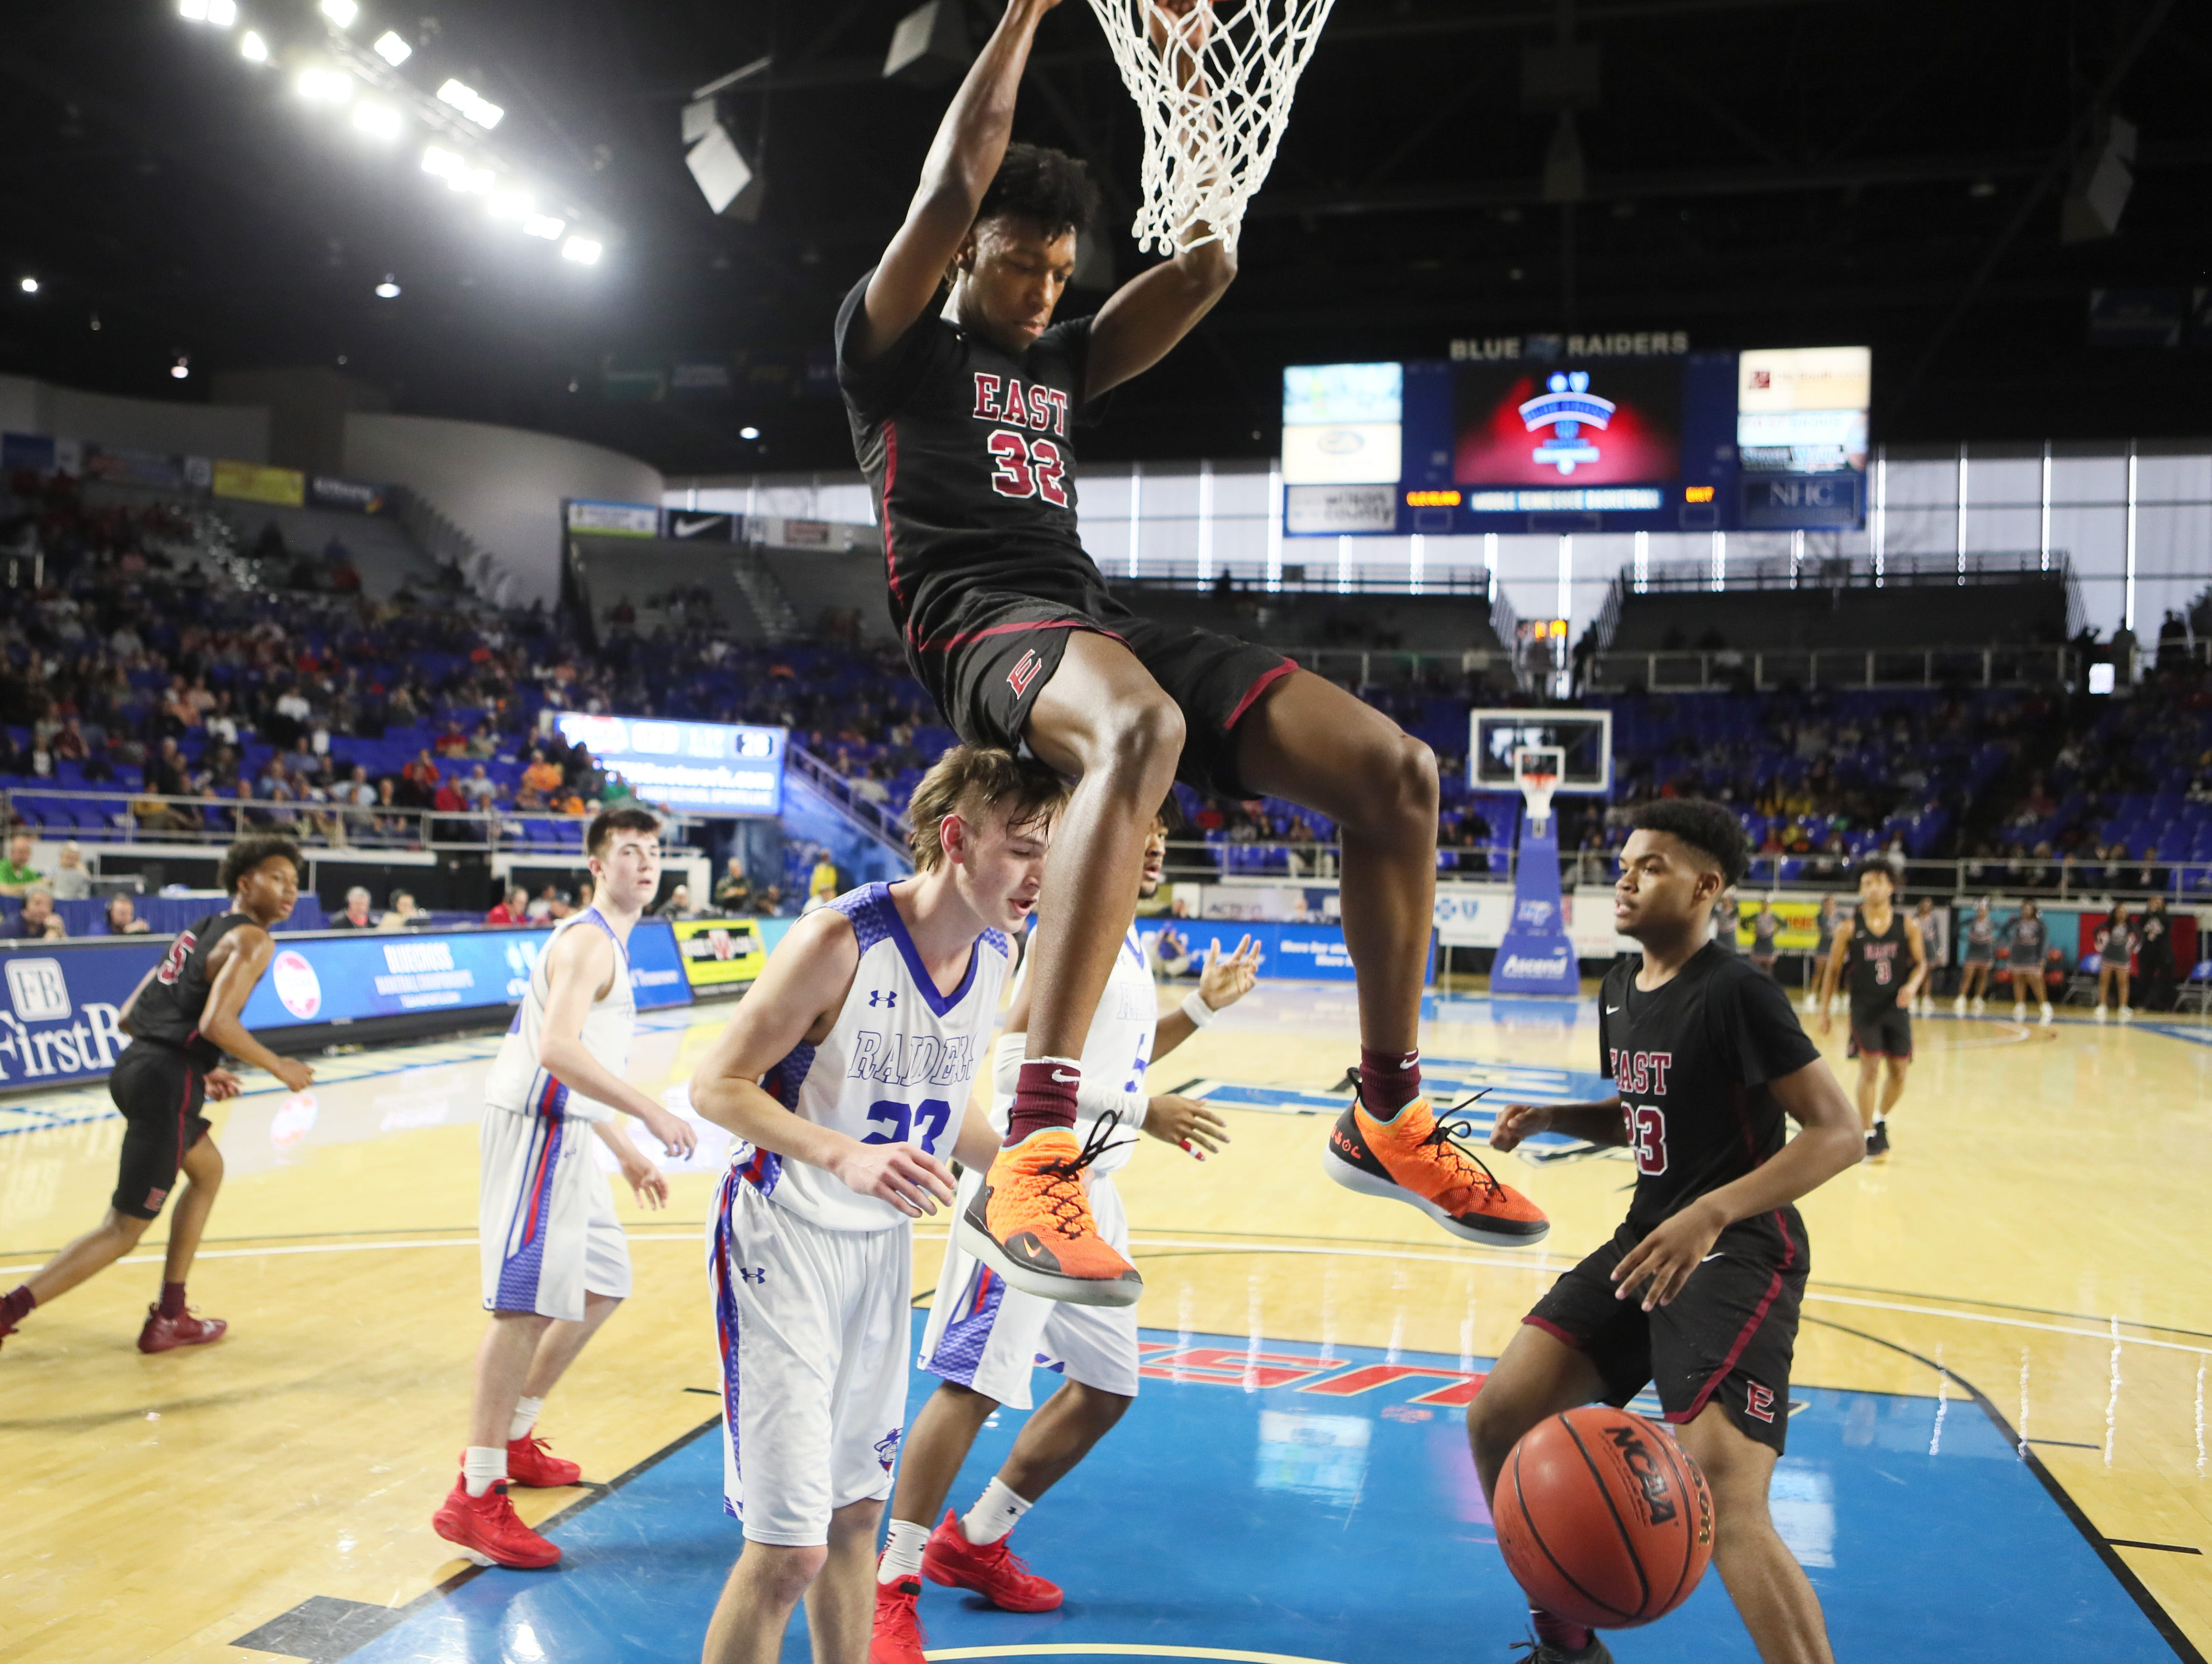 Memphis East's James Wiseman dunks the ball over Cleveland's Klay McGowan during the TSSAA Division I basketball state tournament at the Murphy Center in Murfreesboro, Tenn. on Thursday, March 14, 2019.